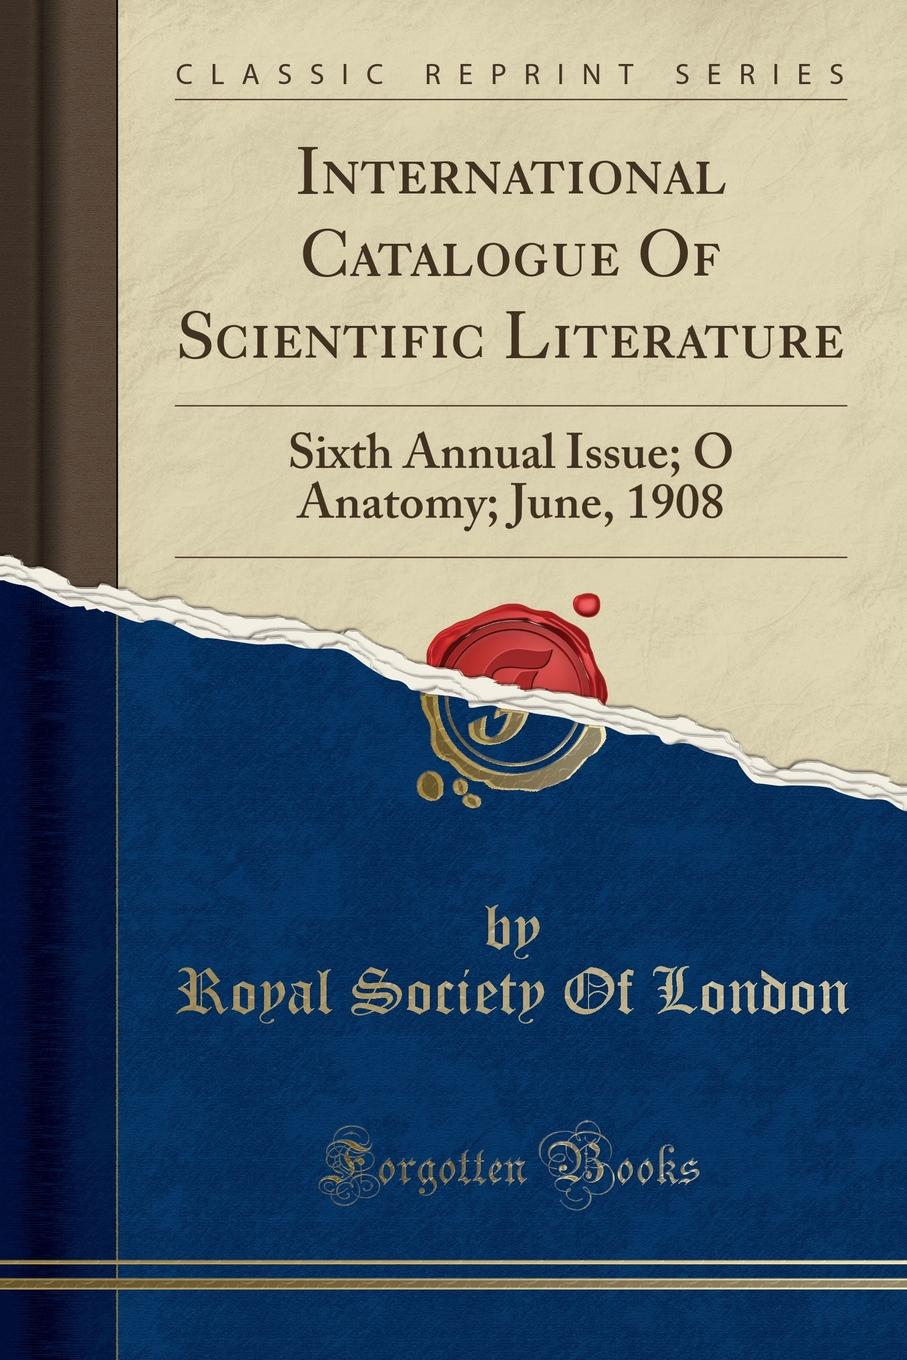 Royal Society Of London International Catalogue Of Scientific Literature. Sixth Annual Issue; O Anatomy; June, 1908 (Classic Reprint) цена 2017